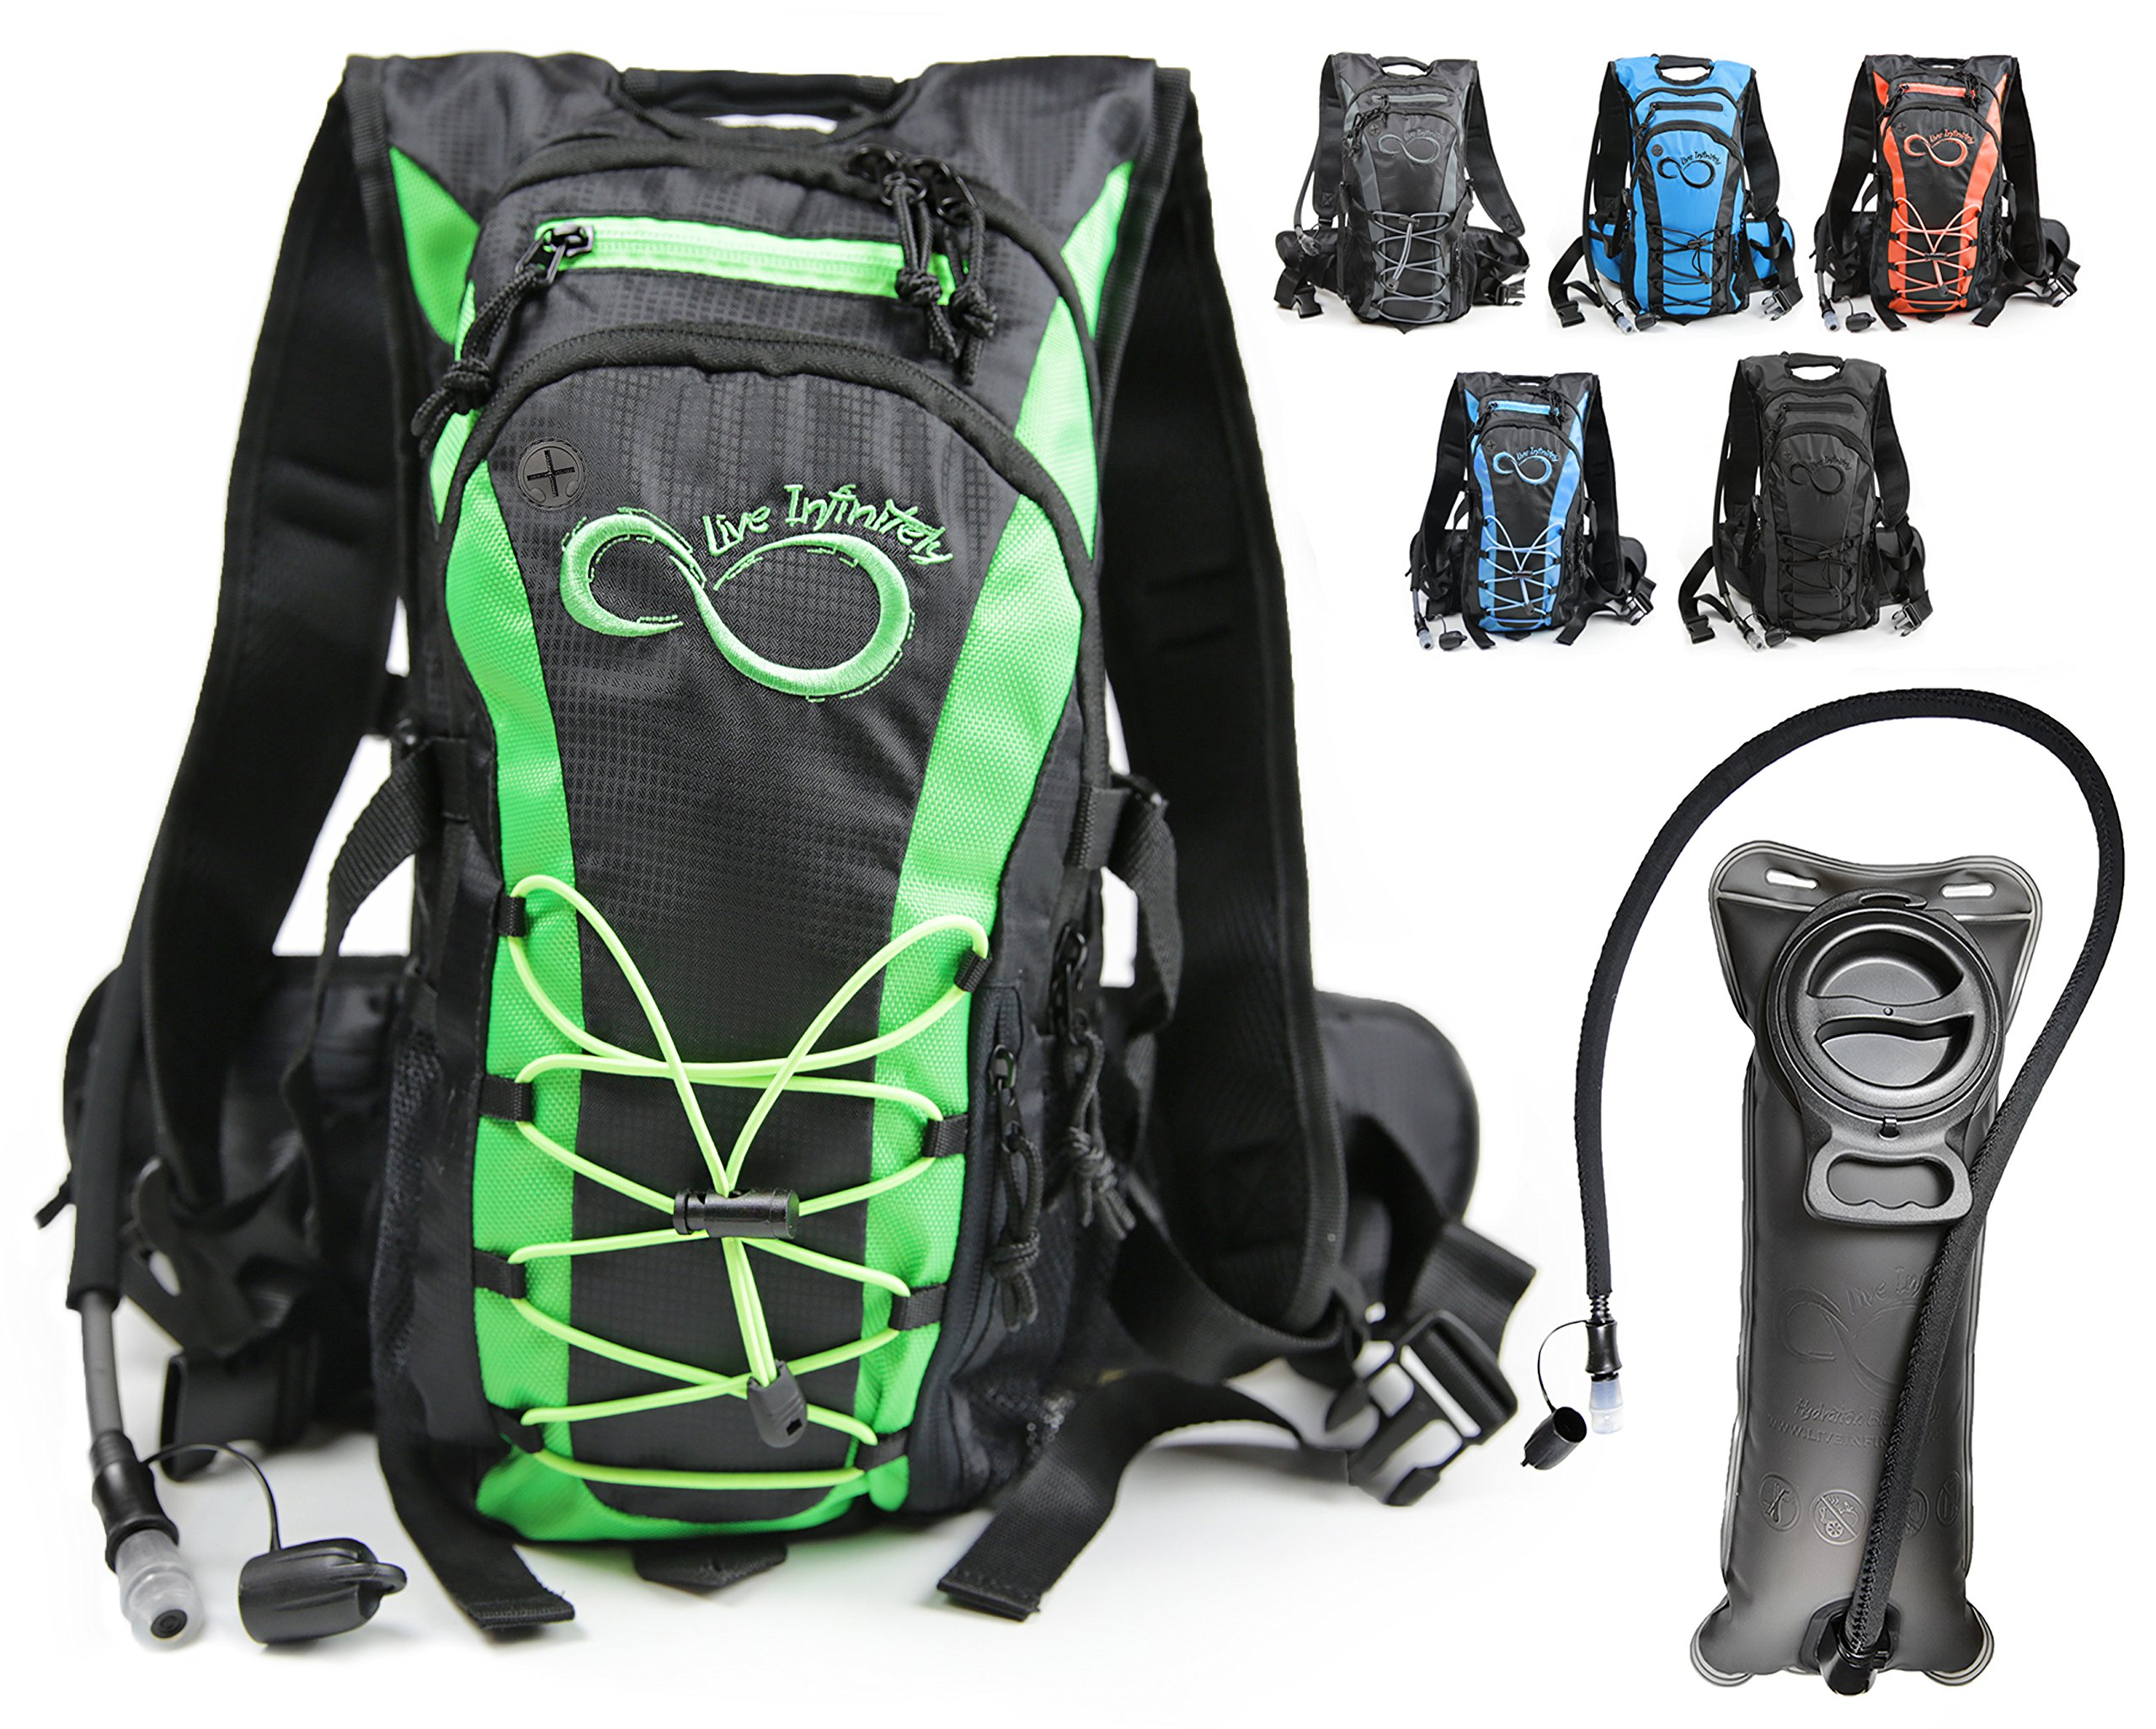 Live Infinitely Hydration Backpack with 2.0L TPU Leak Proof Water Bladder- 600D Polyester -Adjustable Padded Shoulder, Chest & Waist Straps- Silicon Bite Tip & Shut Off Valve- (Green Edges) by Live Infinitely